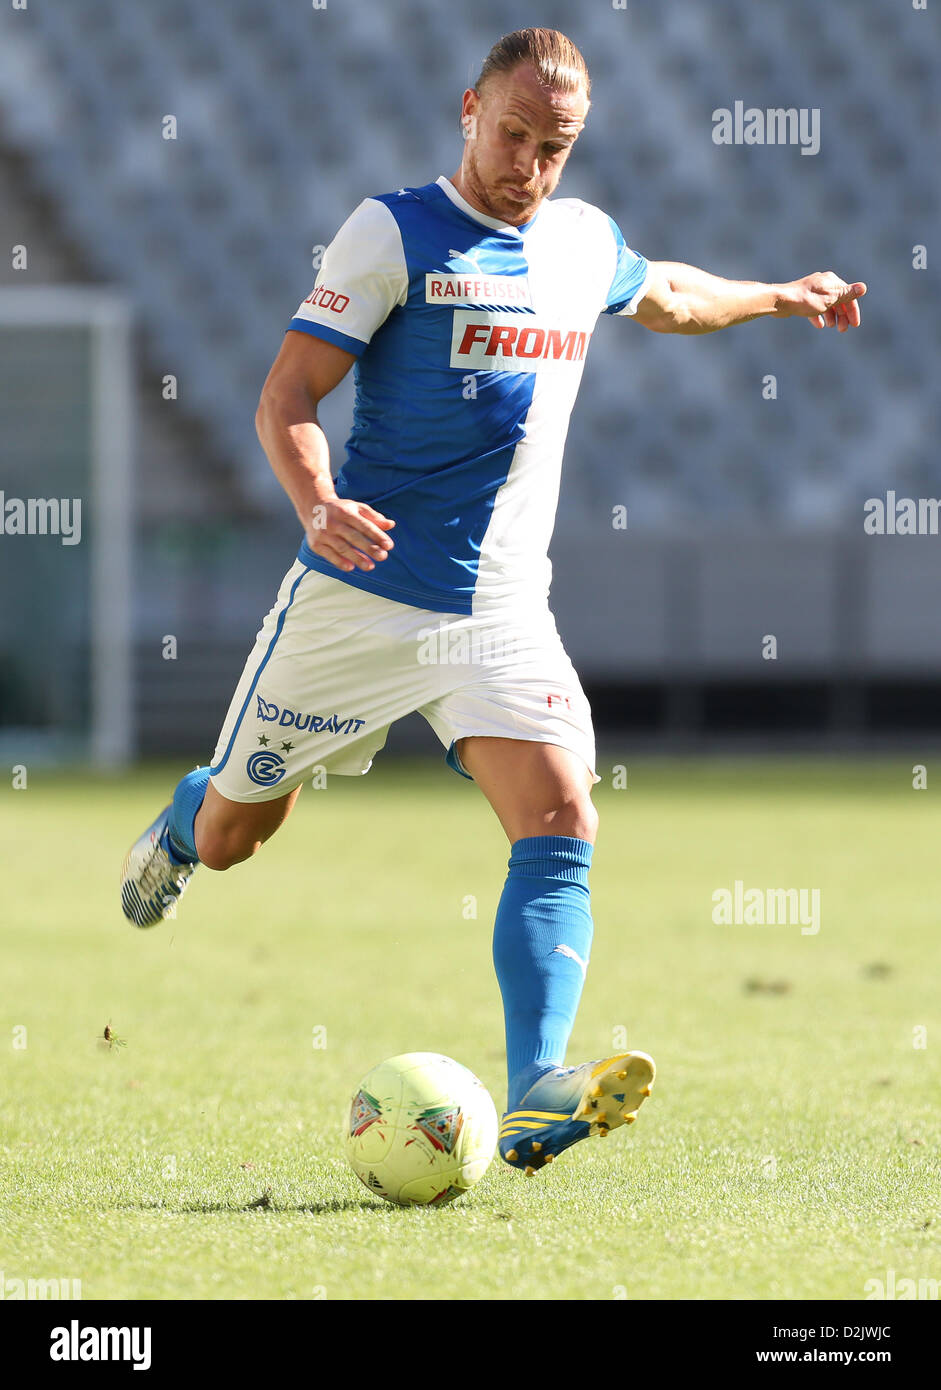 CAPE TOWN, South Africa - Saturday 26 January 2013, Michael Lang of Grasshopper Club Zurich during the soccer/football - Stock Image